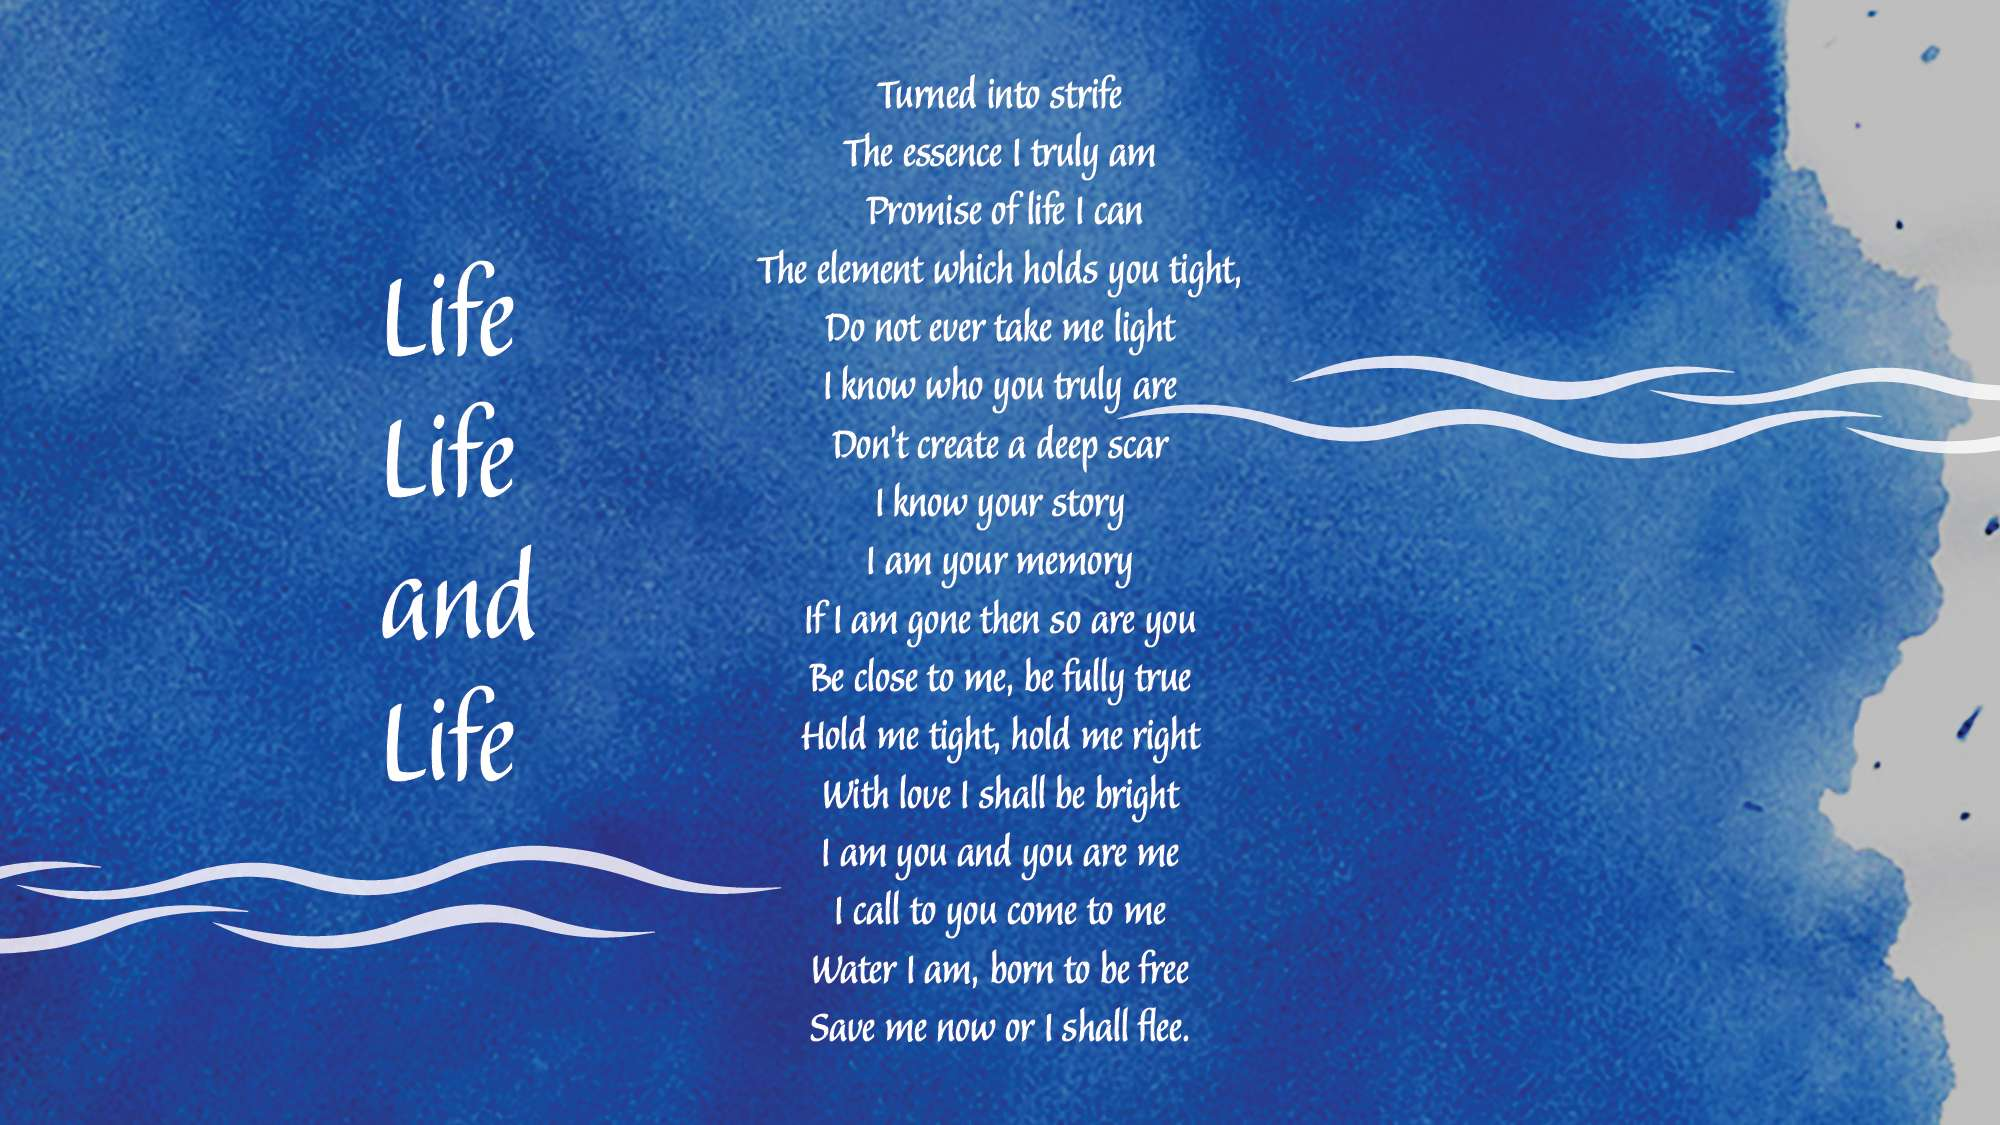 a poem for world water day life life and life